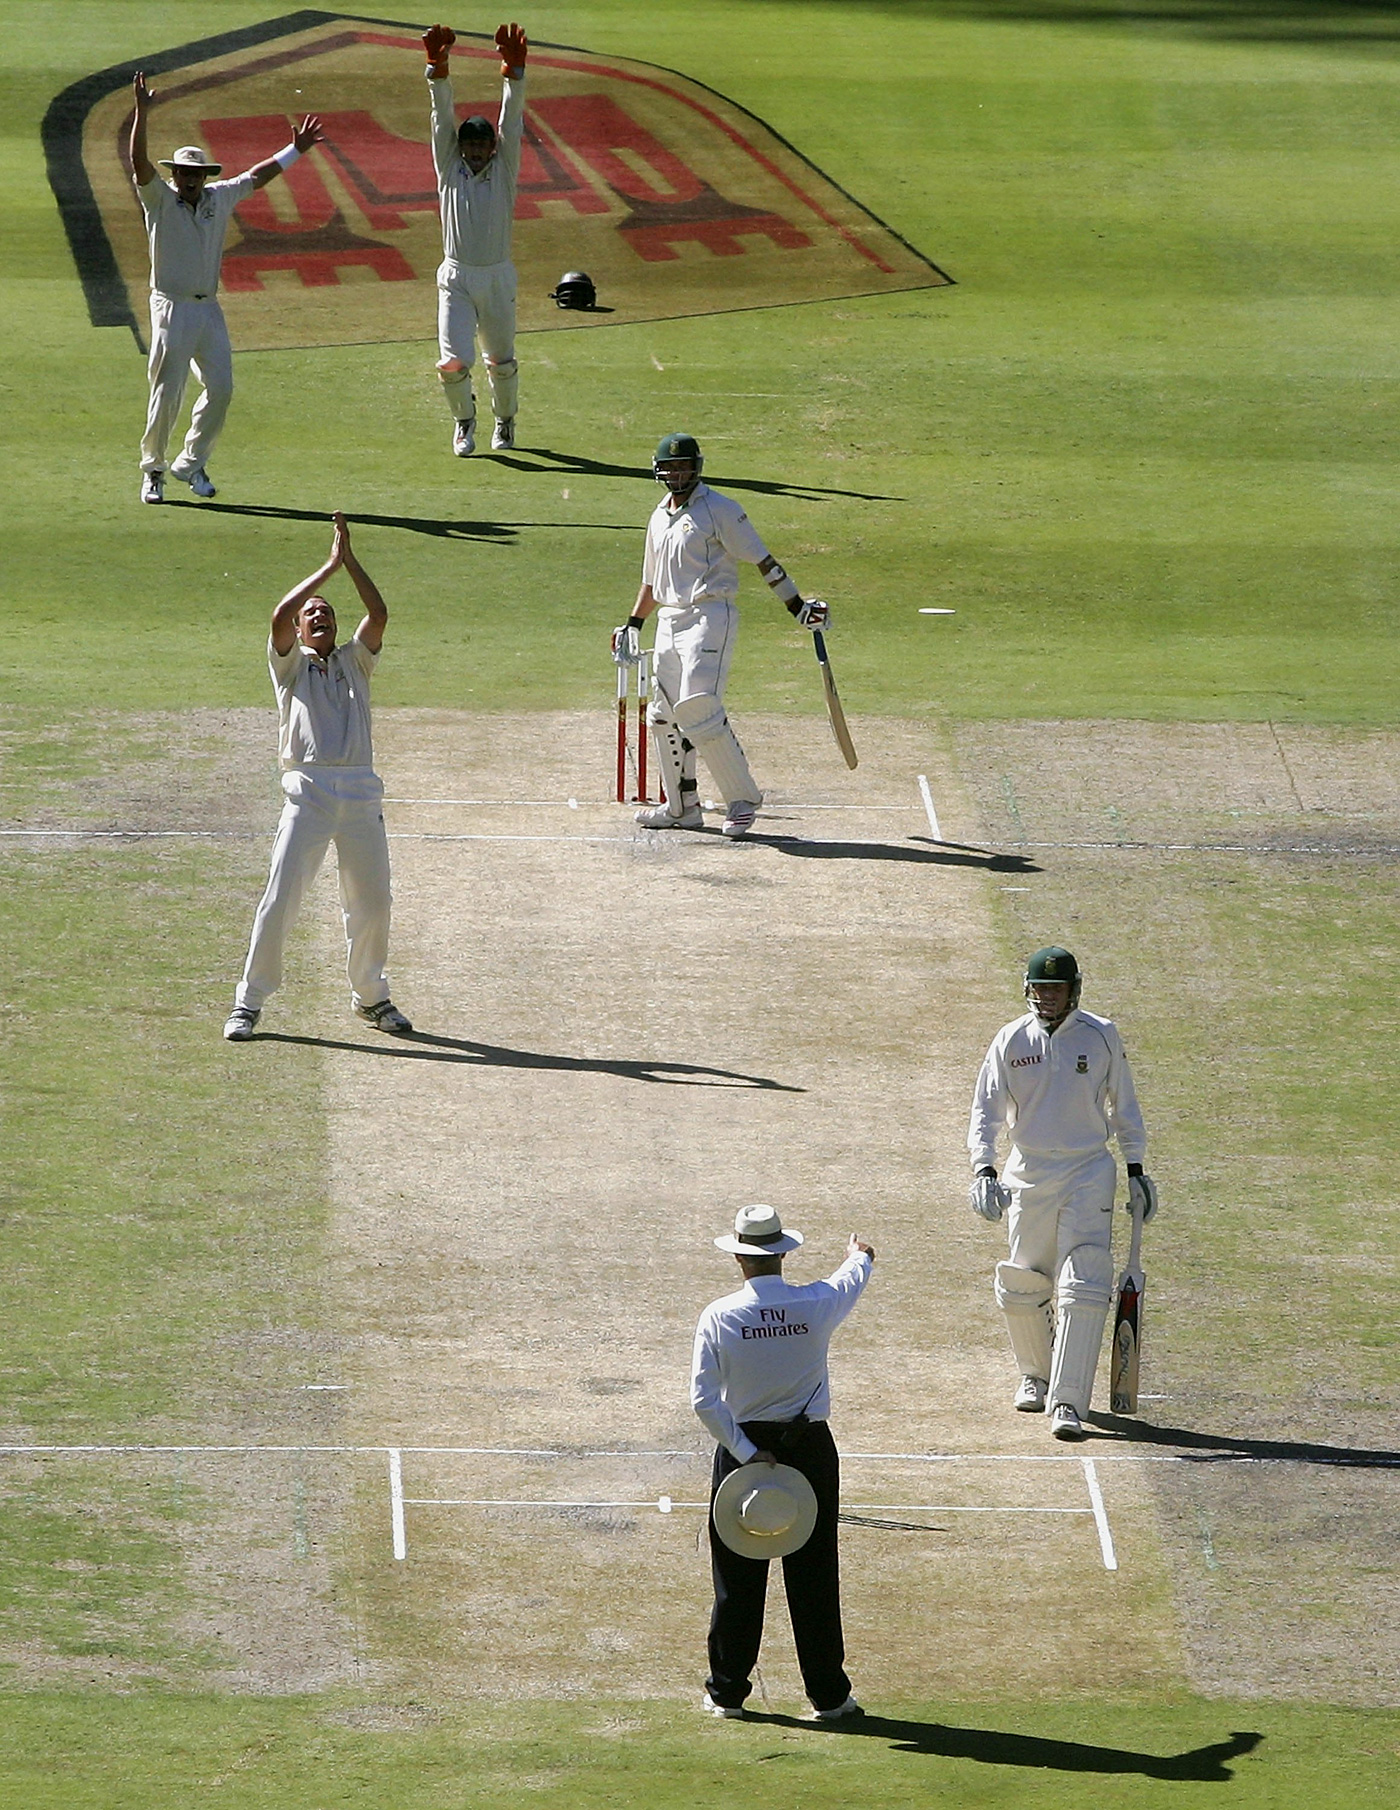 Stuart Clark nailed Jacques Kallis four times in the 2005-06 series in South Africa